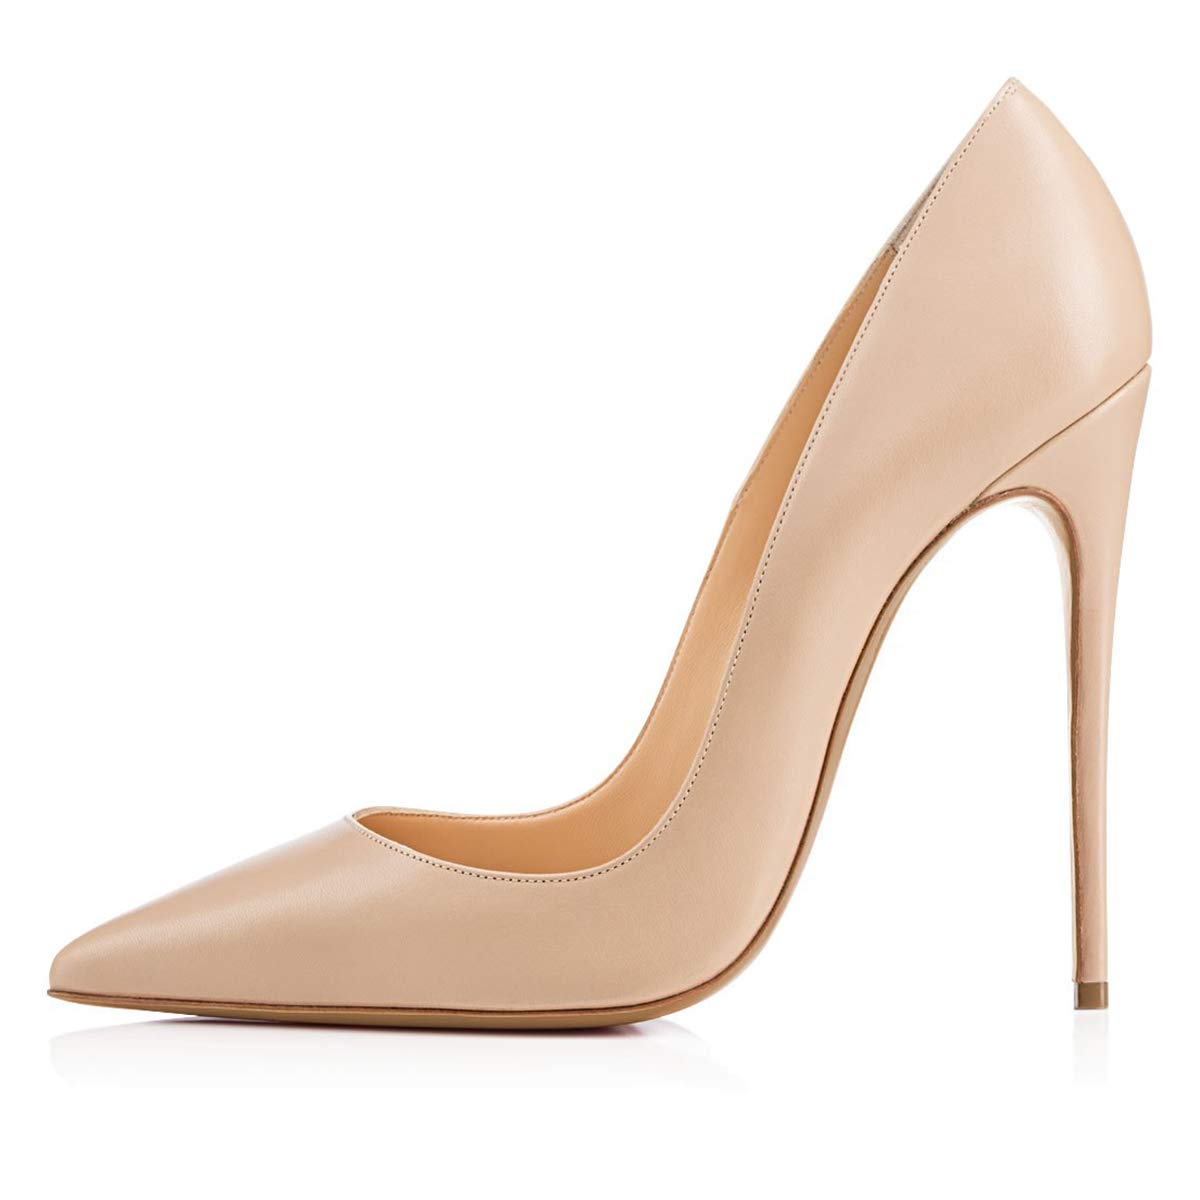 5c90cb4a988 FSJ Women Glossy Fresh Colors Pointed Toe Heels Formal Dress Pumps Shoes  Size 4-15 US